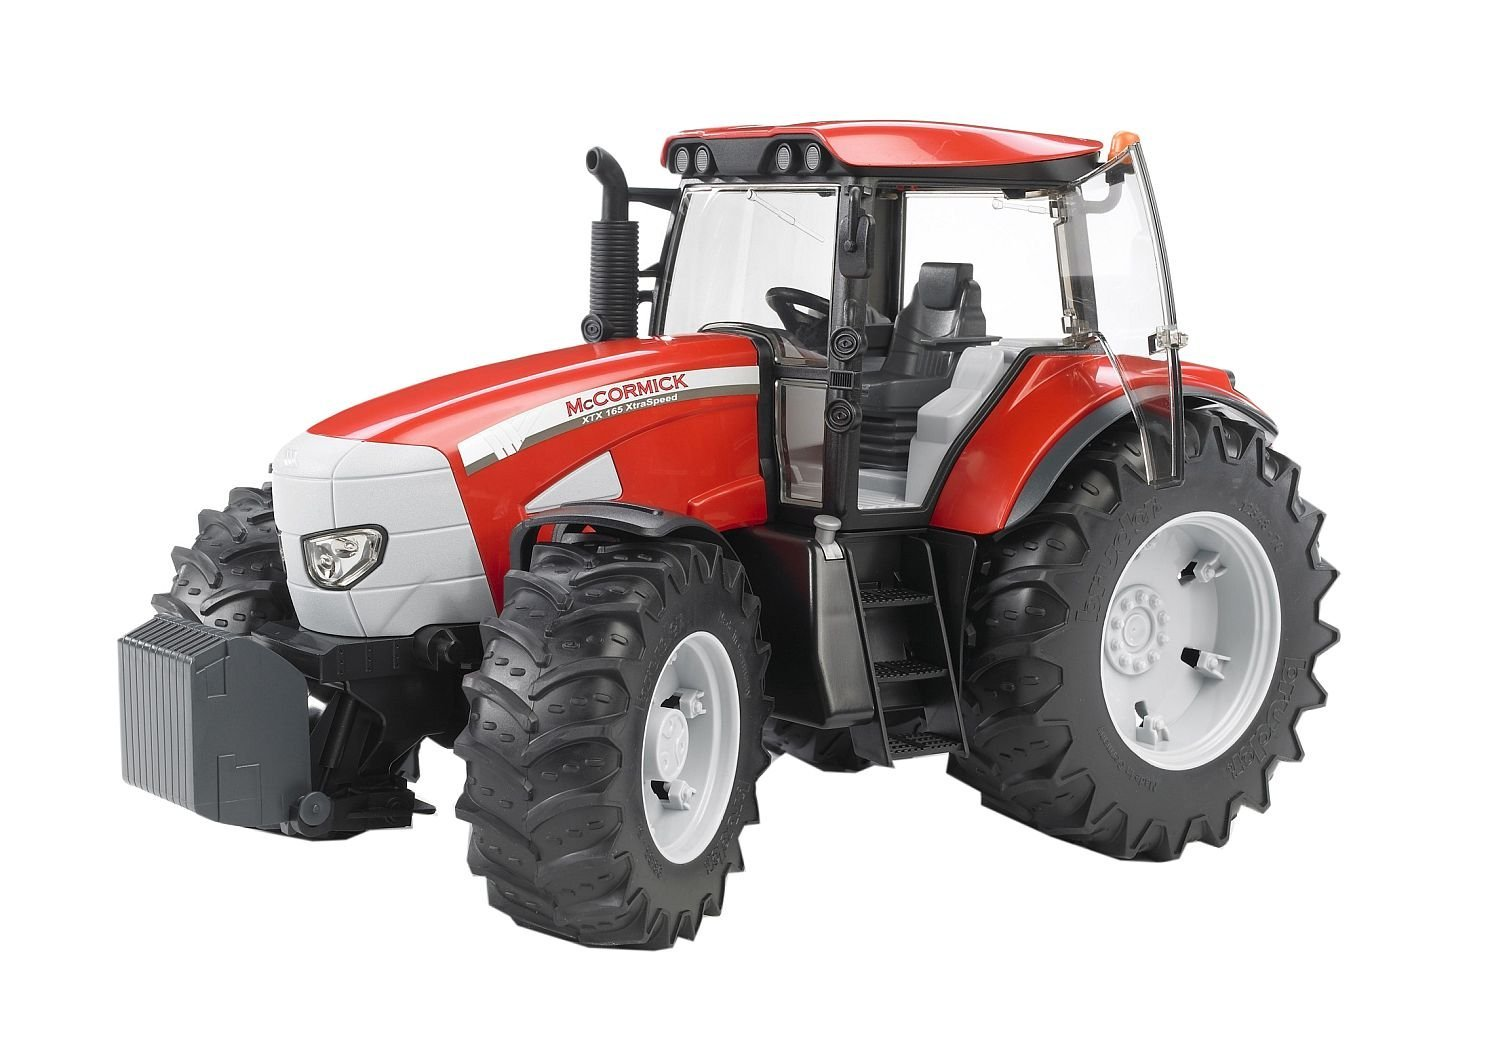 Cheap Mccormick Tractor Manual Find Deals. Get Quotations Bruder Mccormick Xtx 165 Tractor. Wiring. Case Ih Cx70 Wiring Schematic At Scoala.co